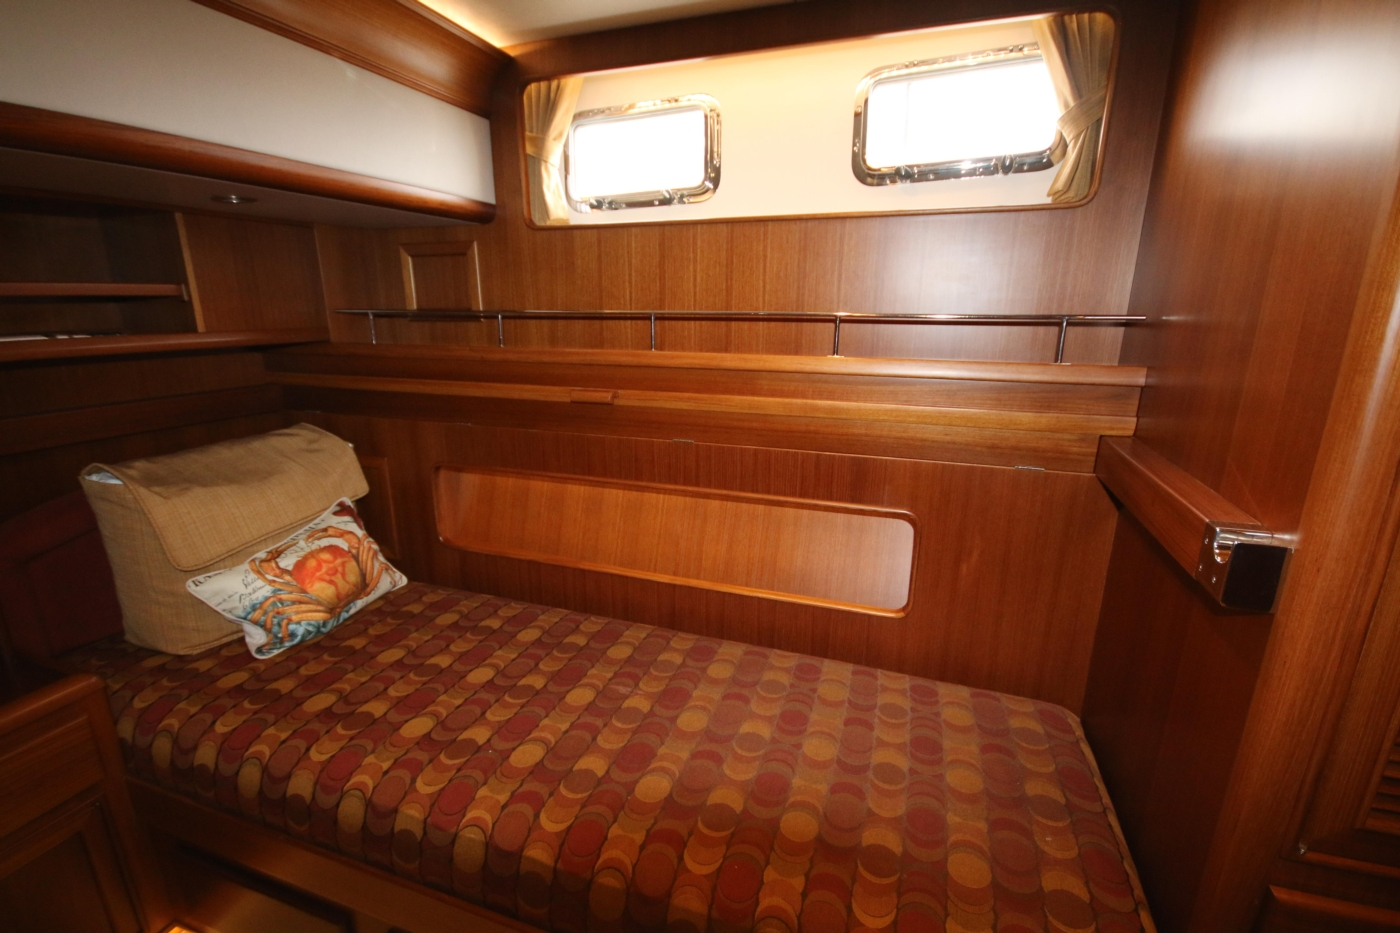 2015 Fleming 58 Pilothouse, Pull-out berth away